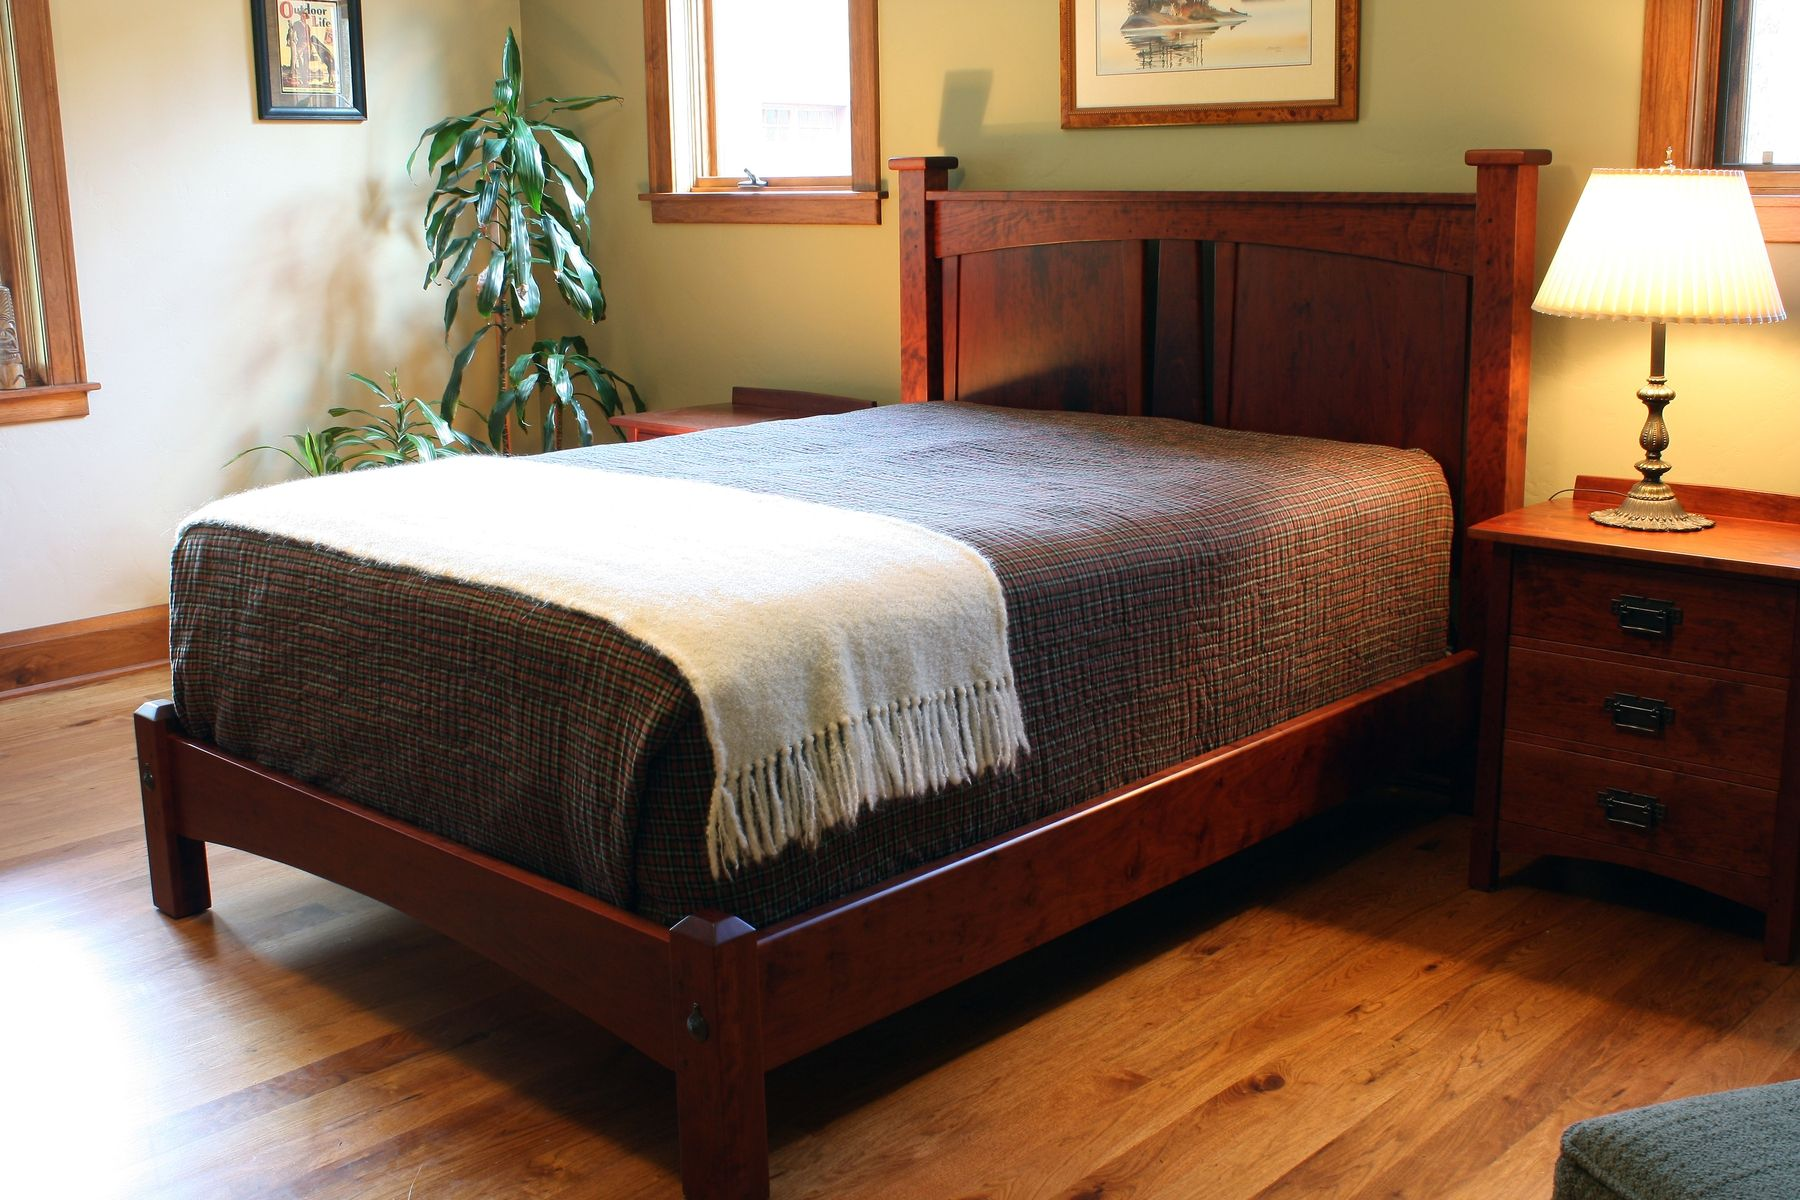 bklyndeluxebed style jack tall mission headboard bed greco brooklyn bedroom ny furniture rochester